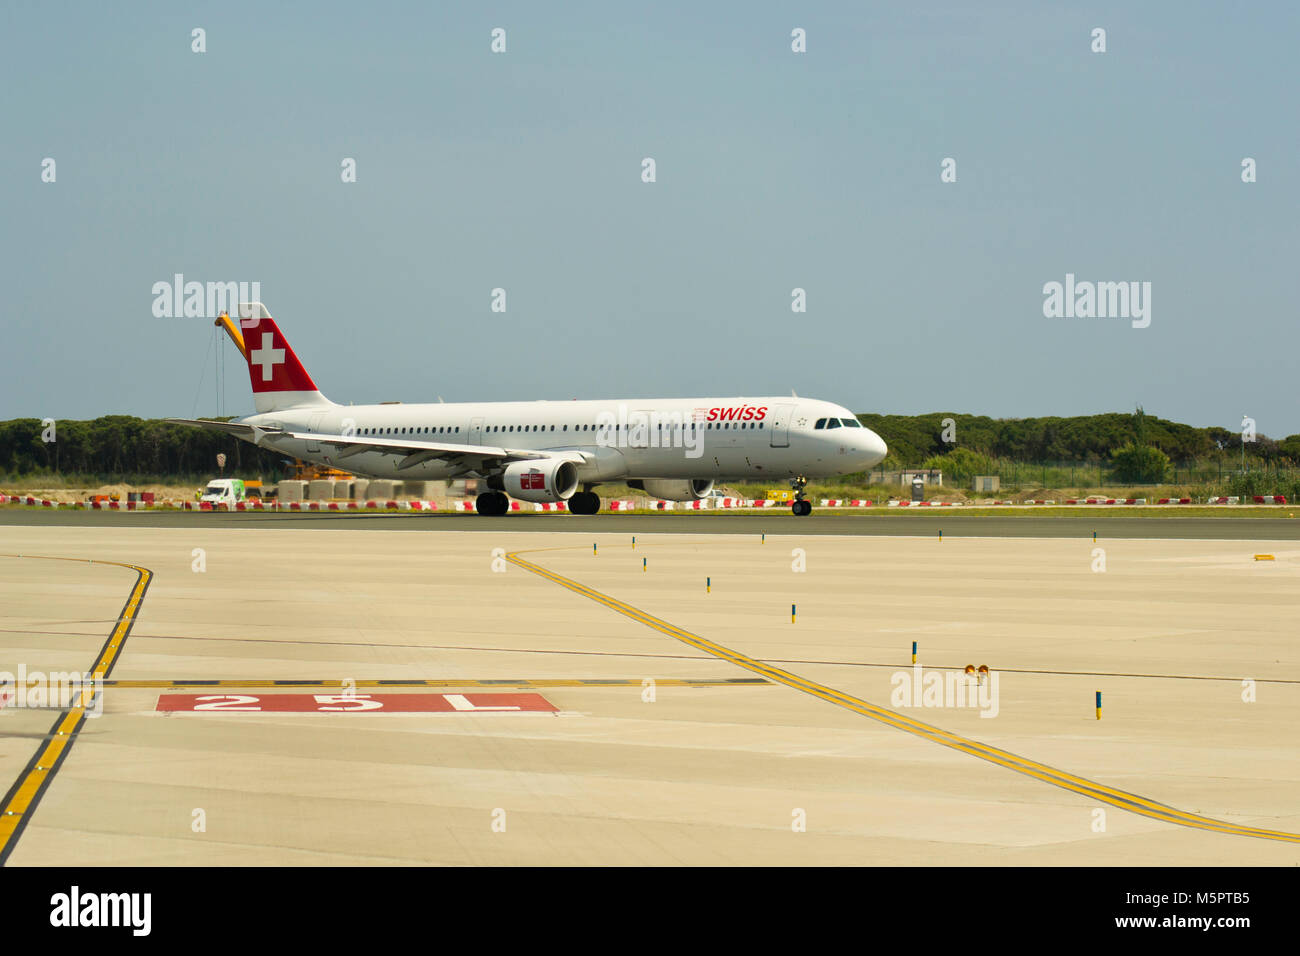 BARCELONA, SPAIN - MAY 30, 2012: A Swiss Airbus 321 starting take off run on from runway 25L in El Prat Barcelona Stock Photo